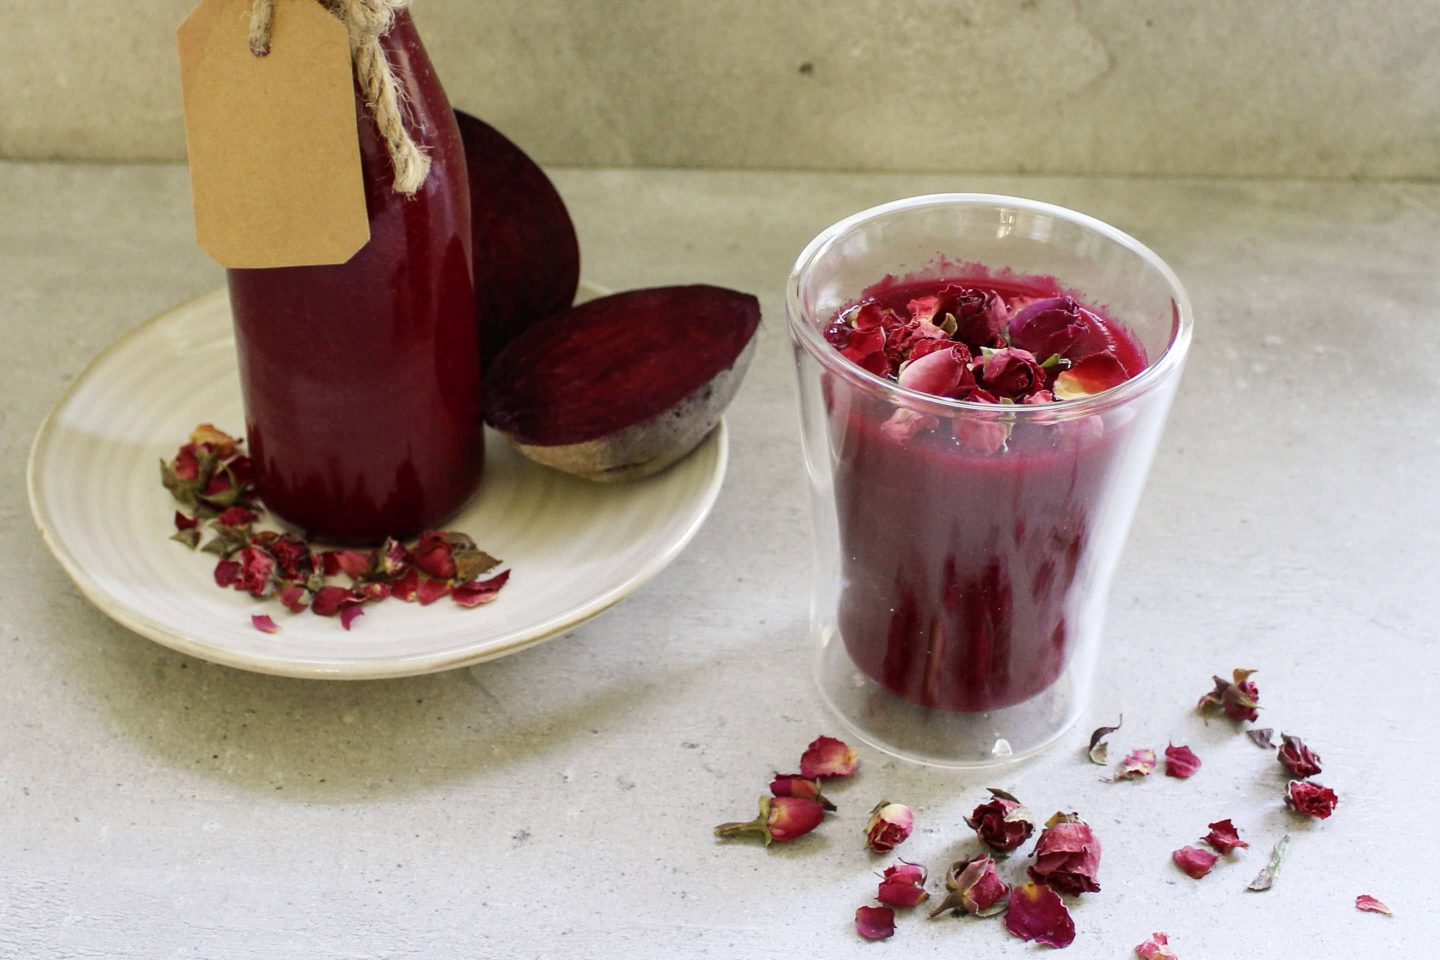 Beetroot smoothie with ground ginger in a glass garnished with rose petals